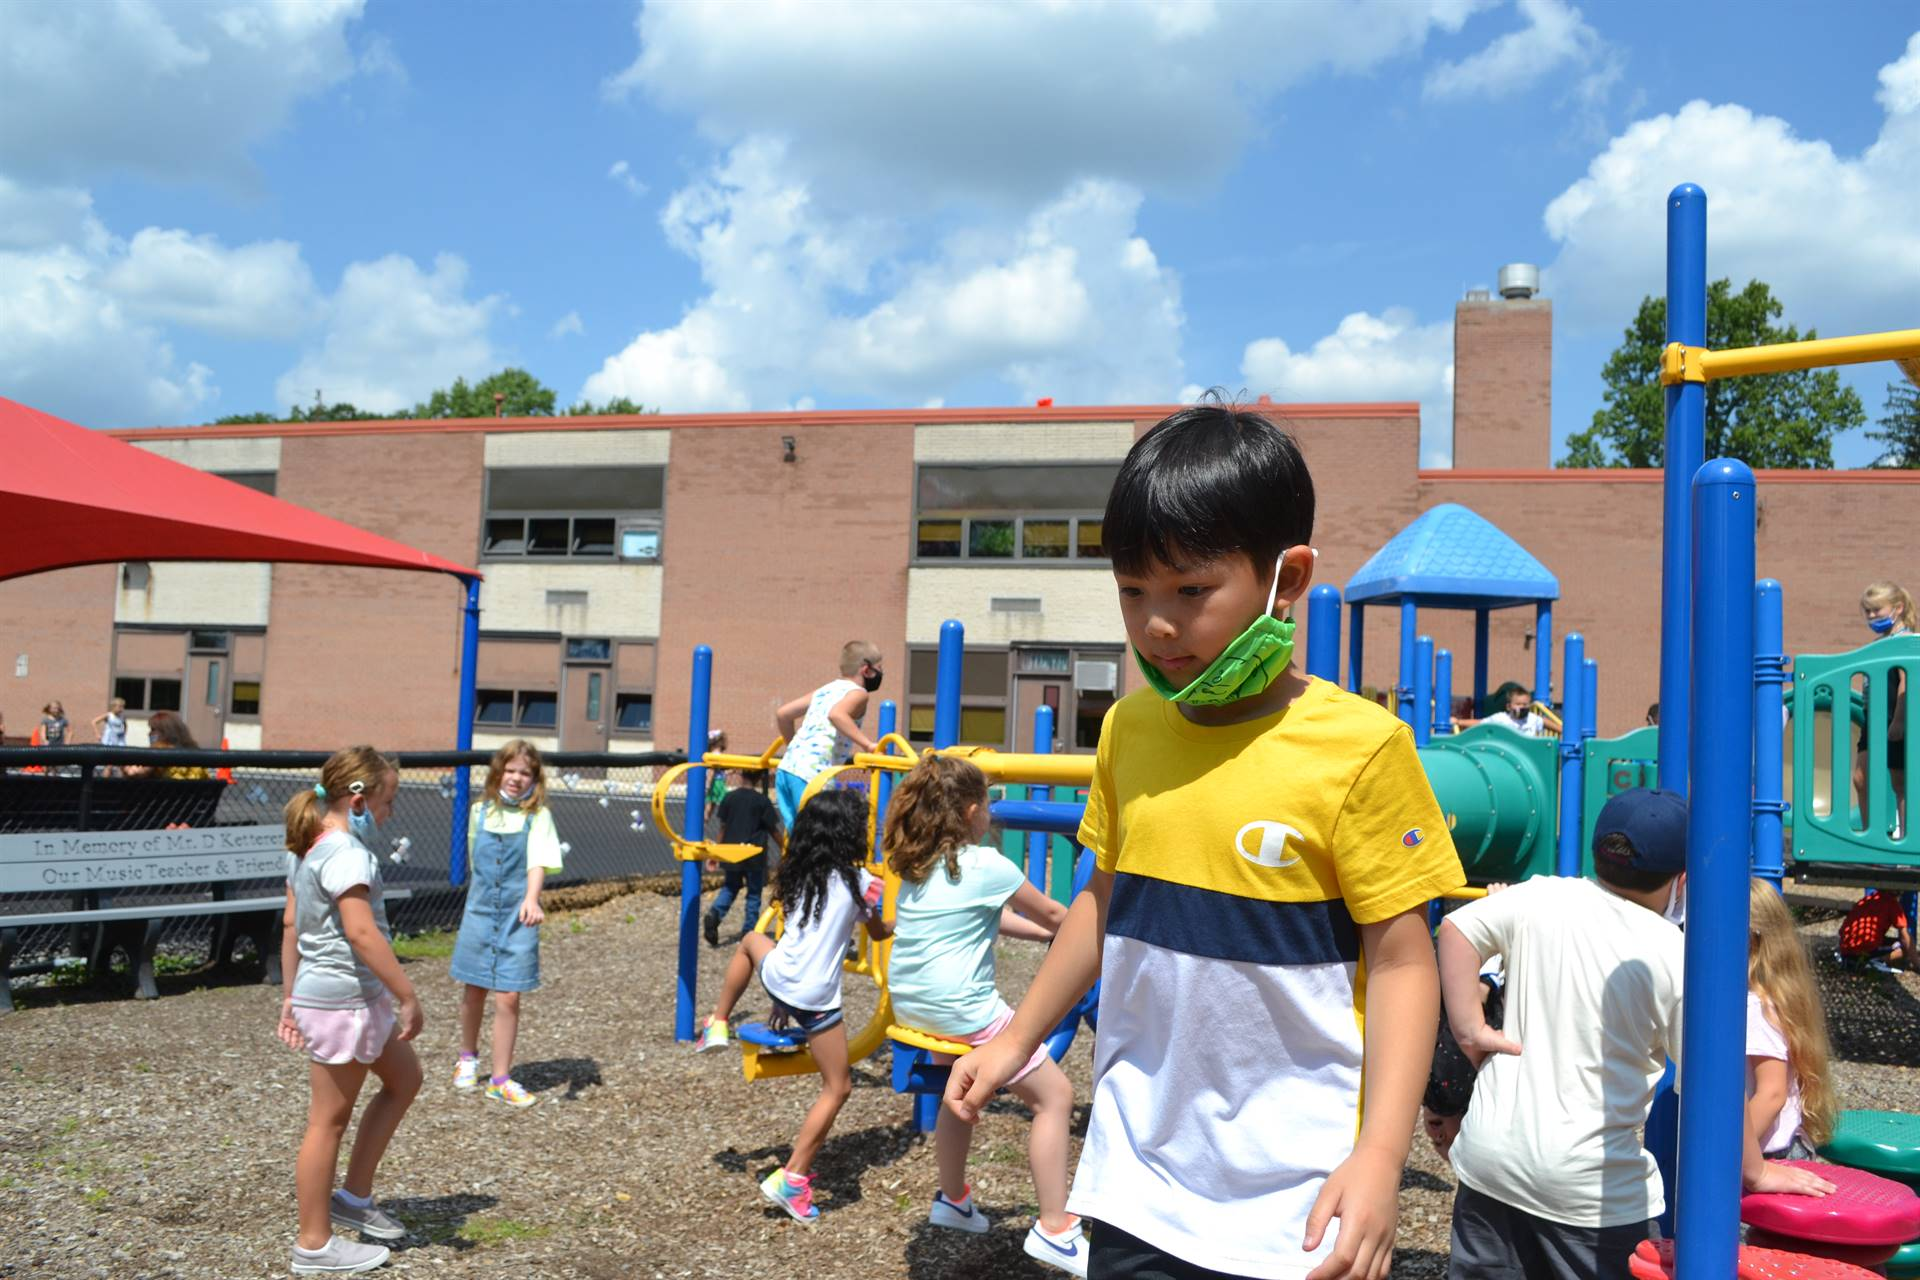 Students playing on the playground equipment